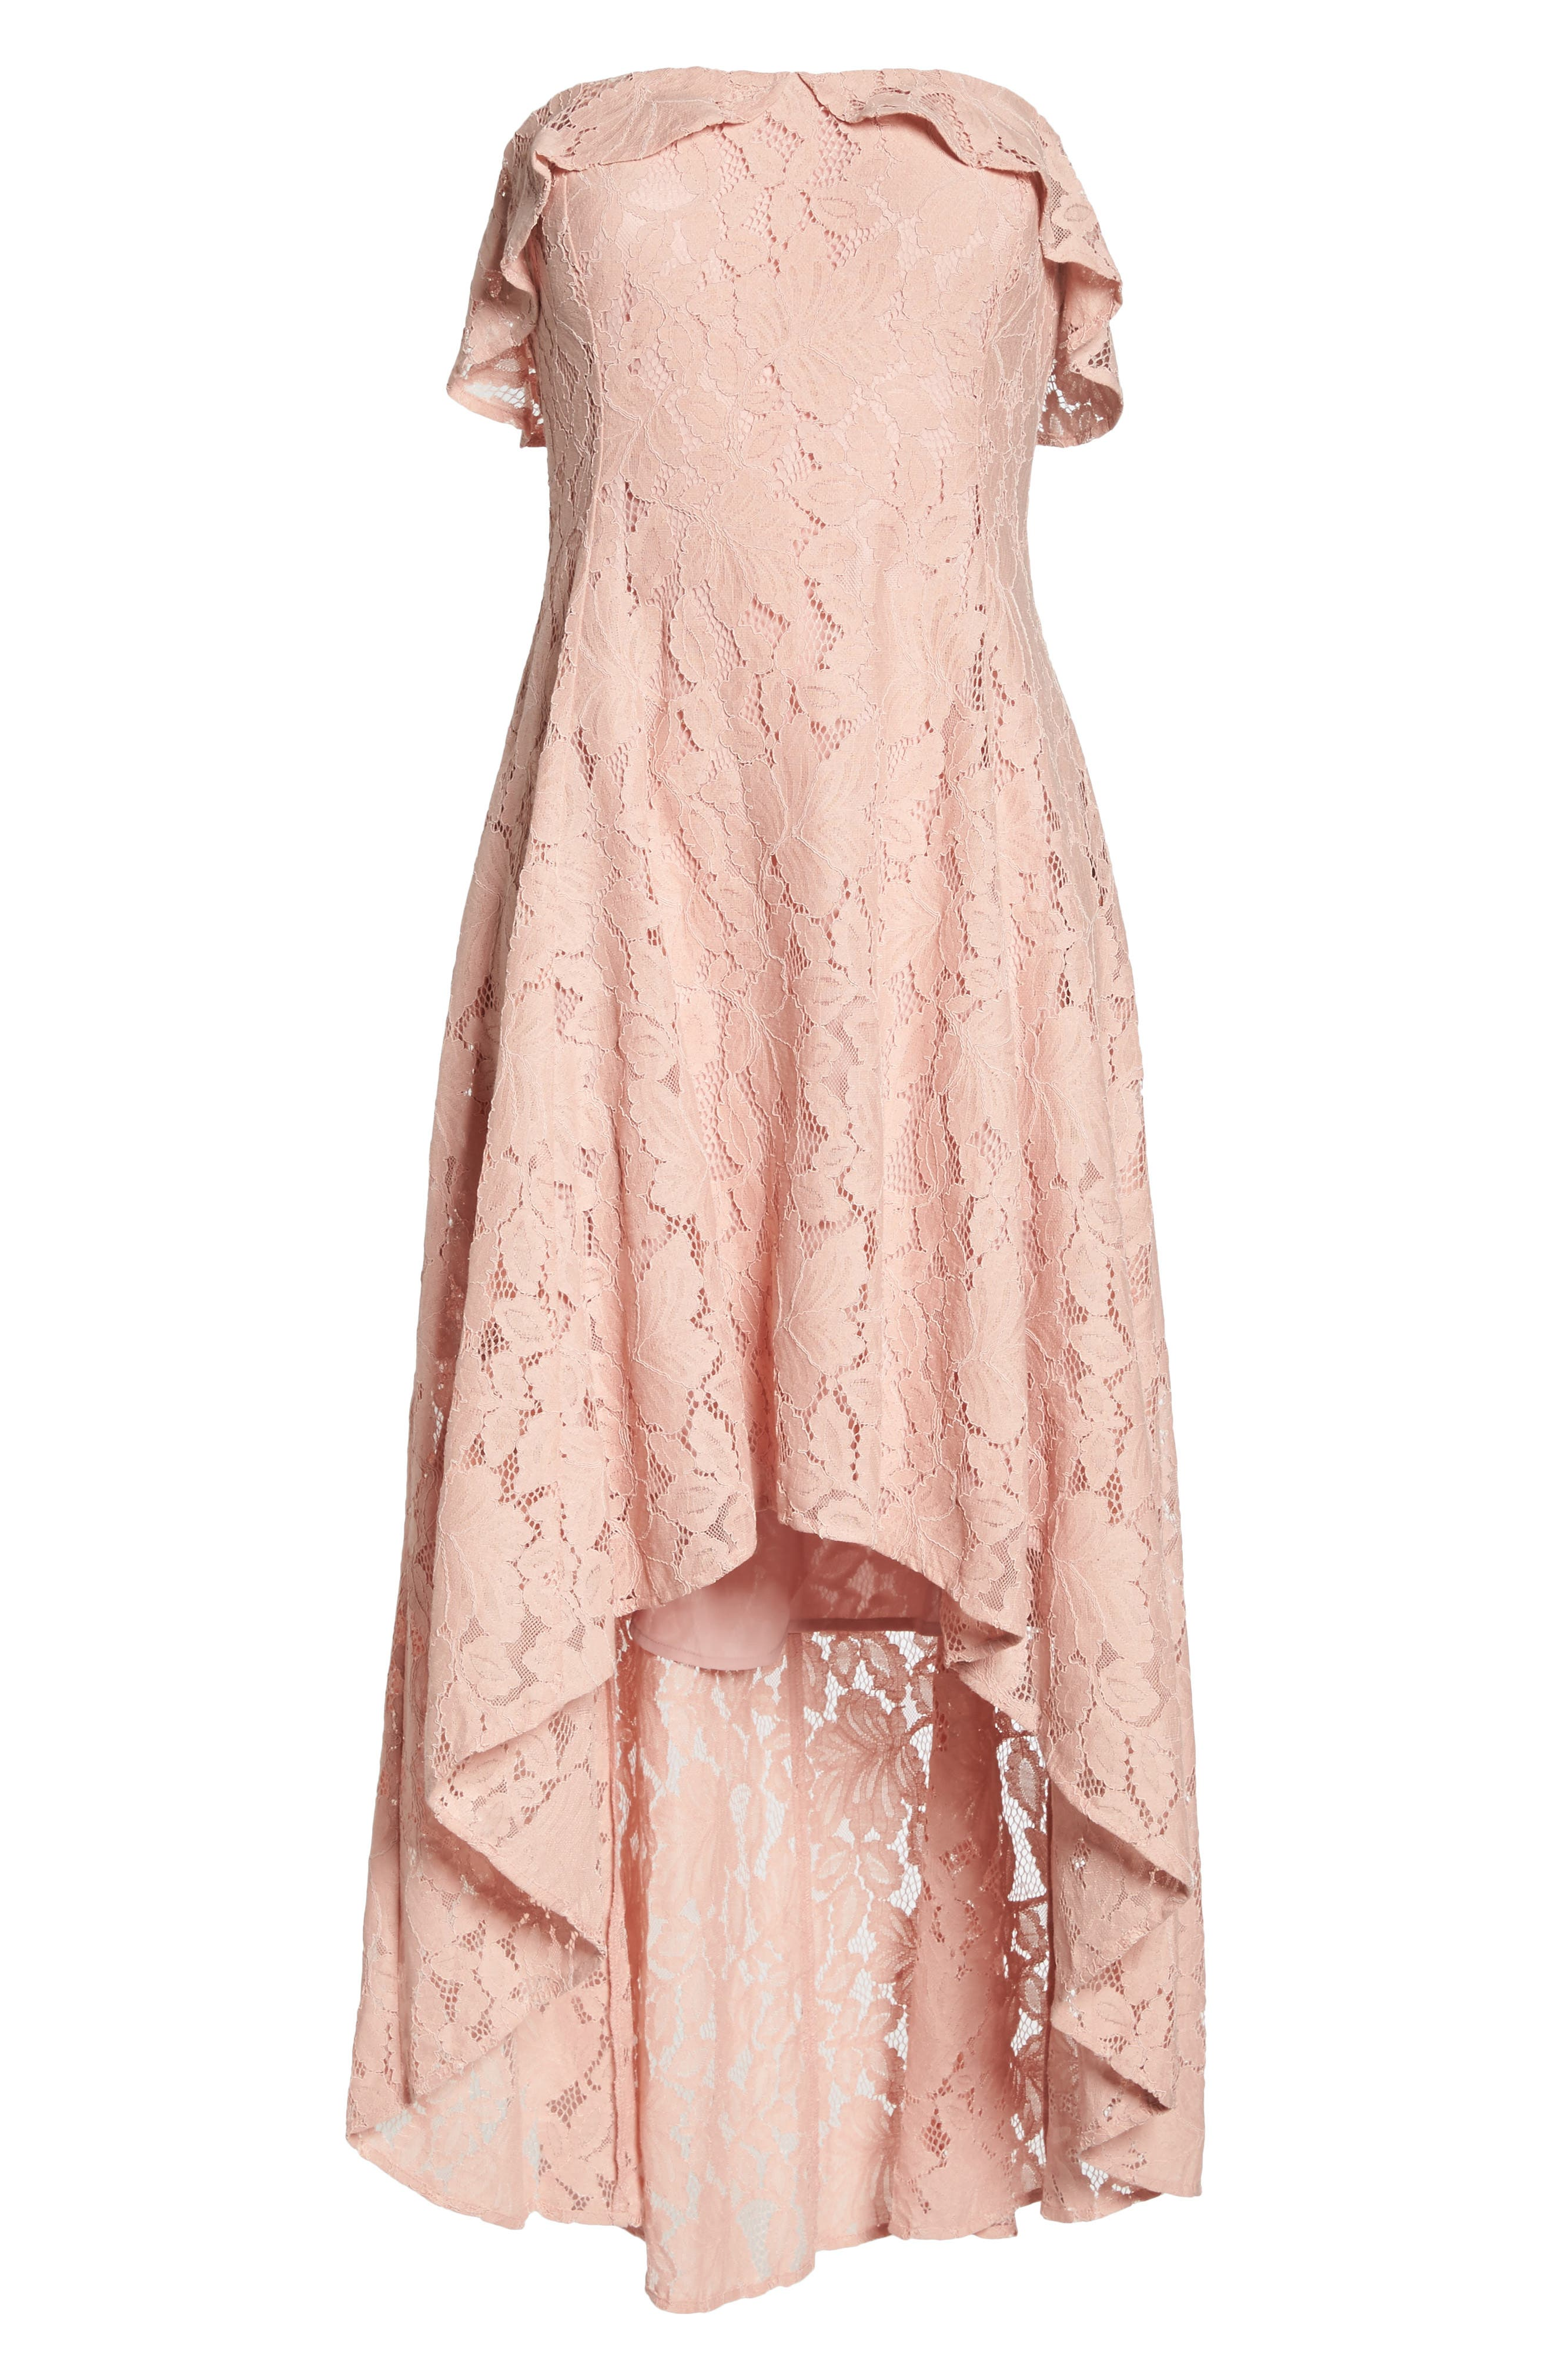 Strapless Lace High/Low Dress,                             Alternate thumbnail 7, color,                             689